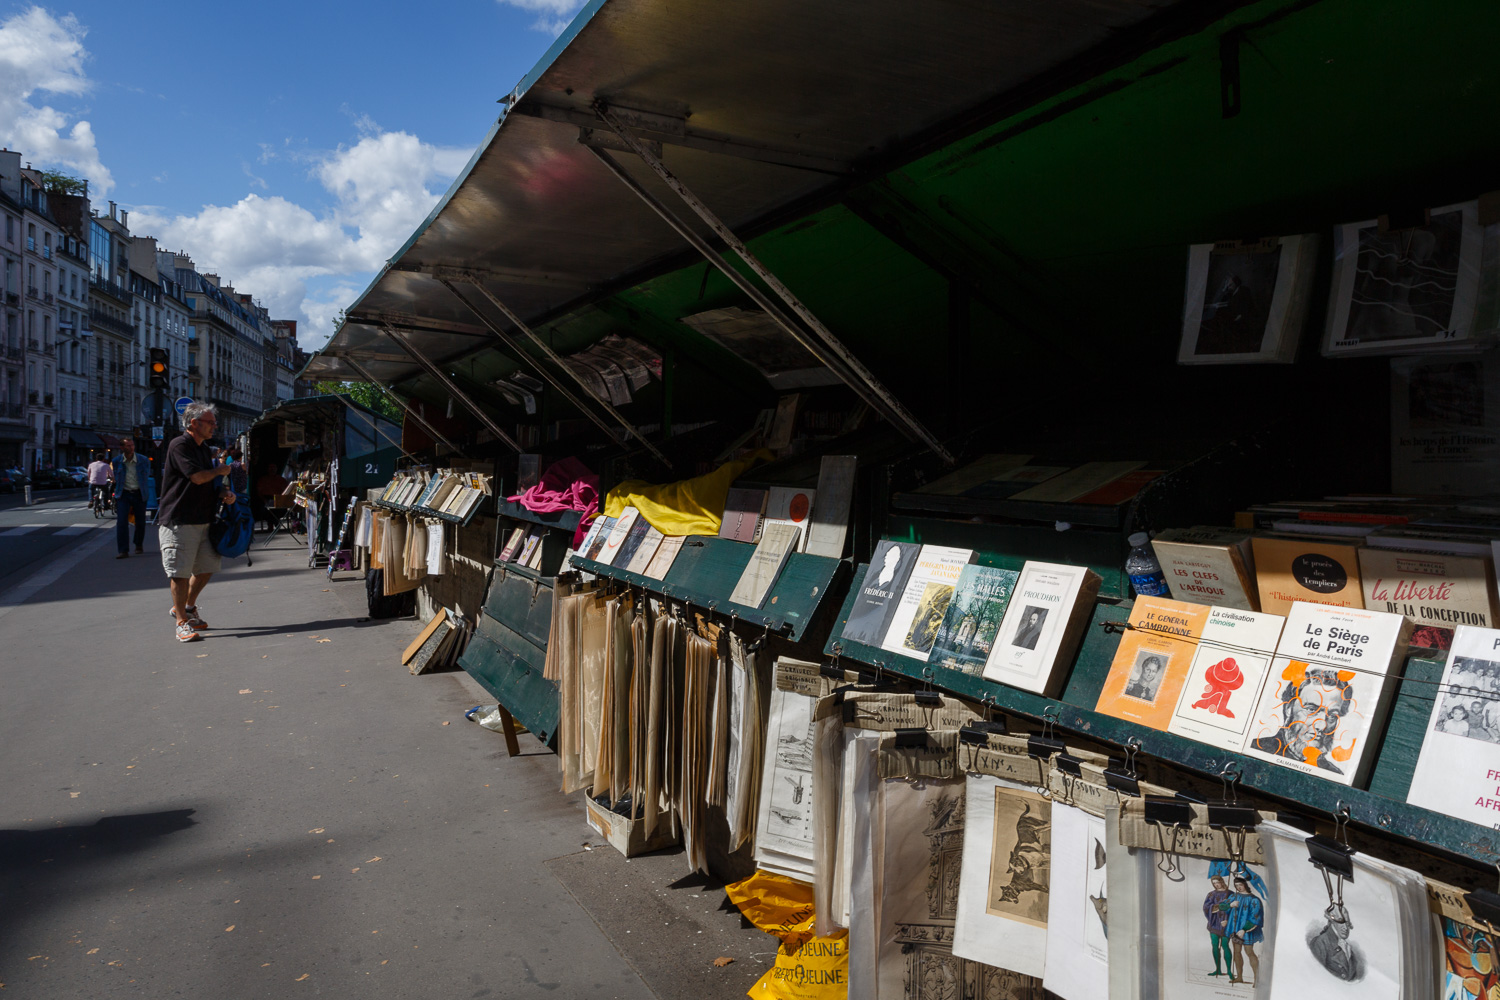 Bouquiniste booksellers along the Seine River in Paris